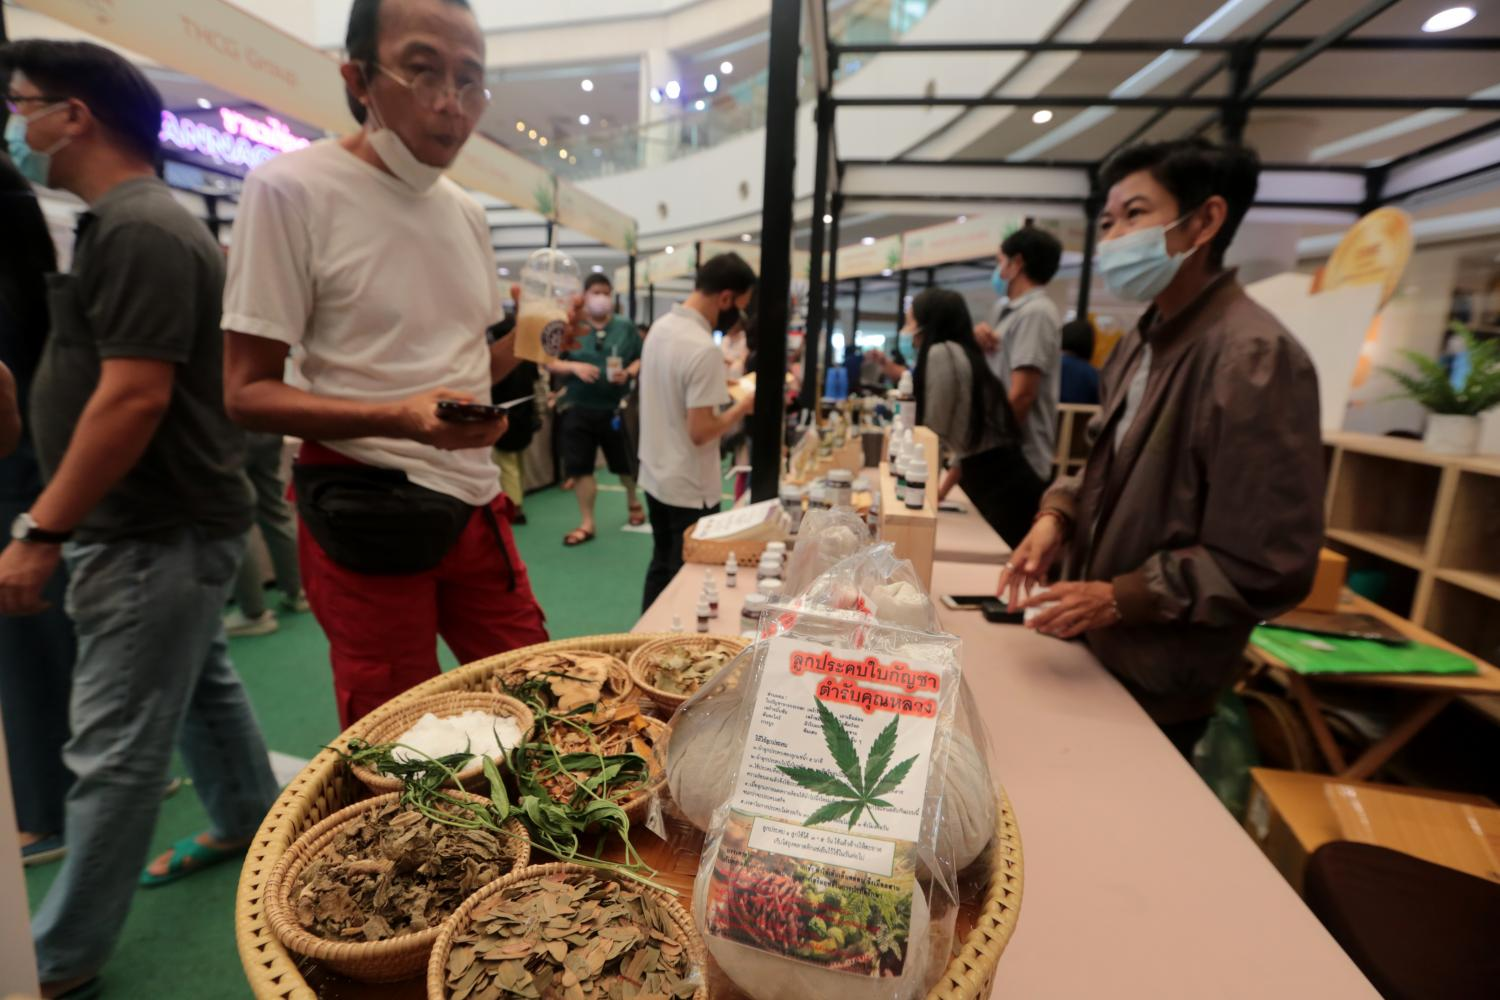 Products made from cannabis are displayed at a fair promoting marijuana and other plants that yield medicinal properties.(Photo by Chanat Katanyu)